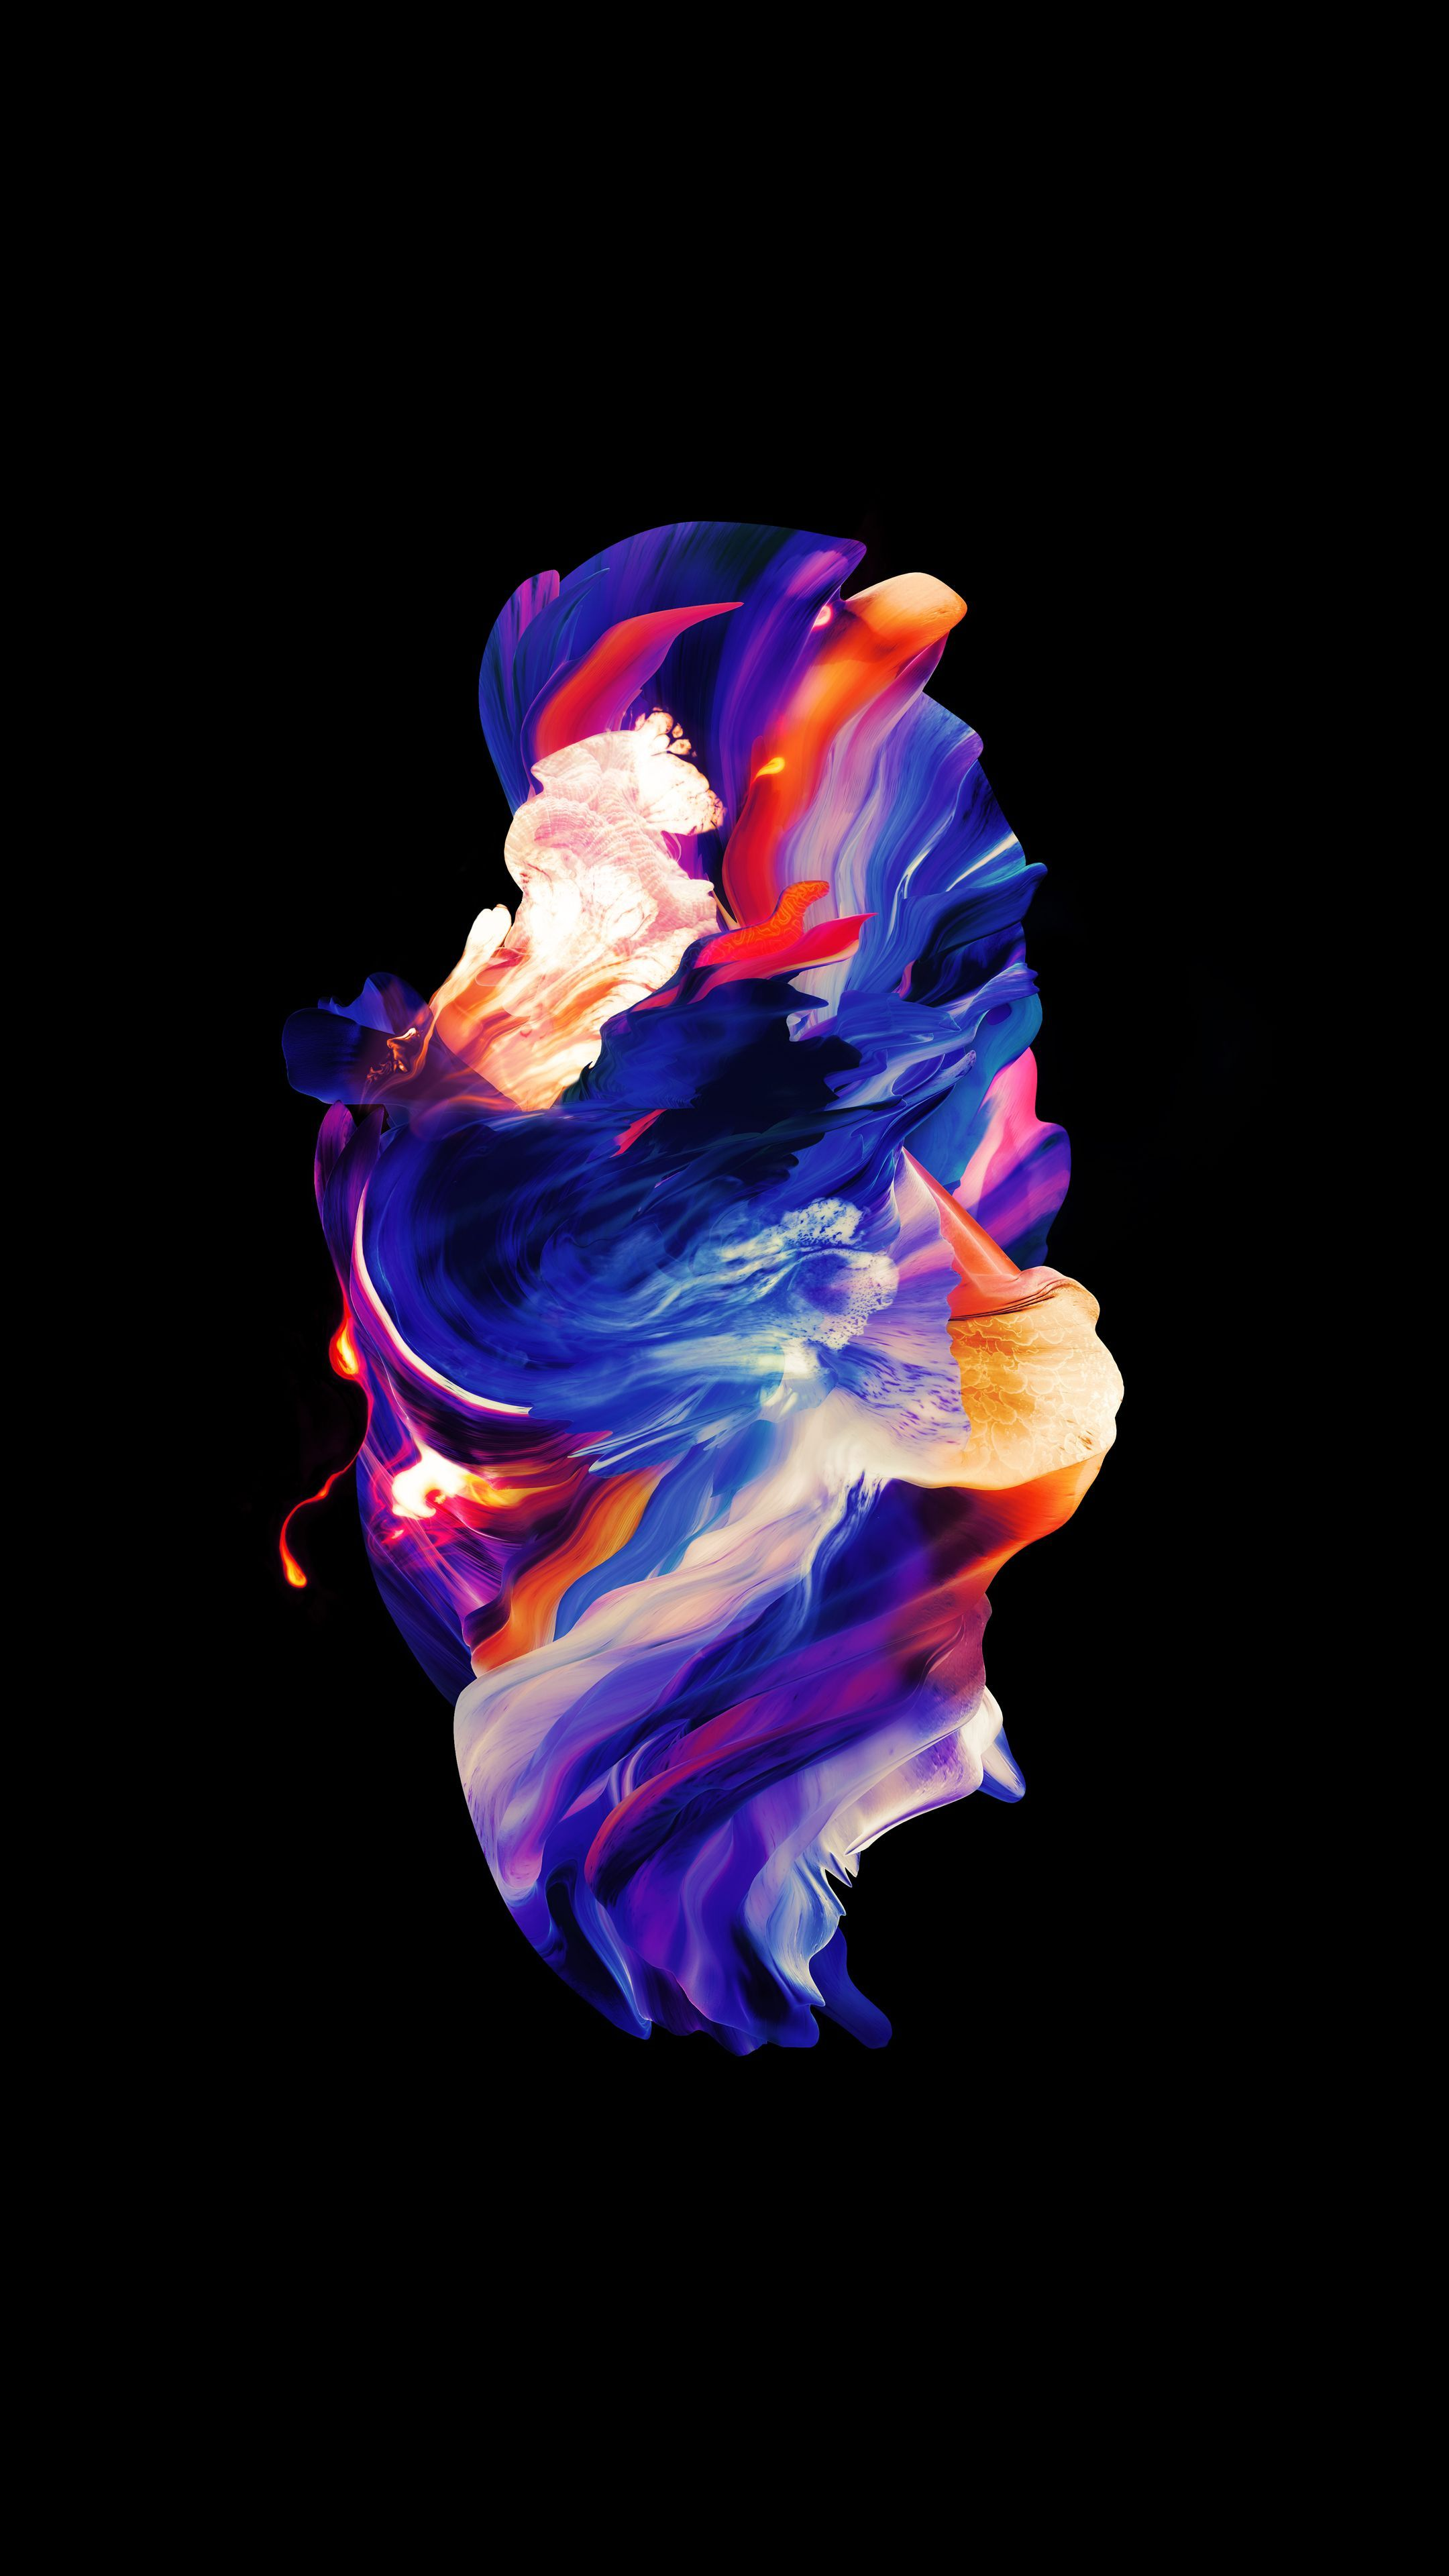 Amoled 4k Wallpapers Top Free Amoled 4k Backgrounds Wallpaperaccess